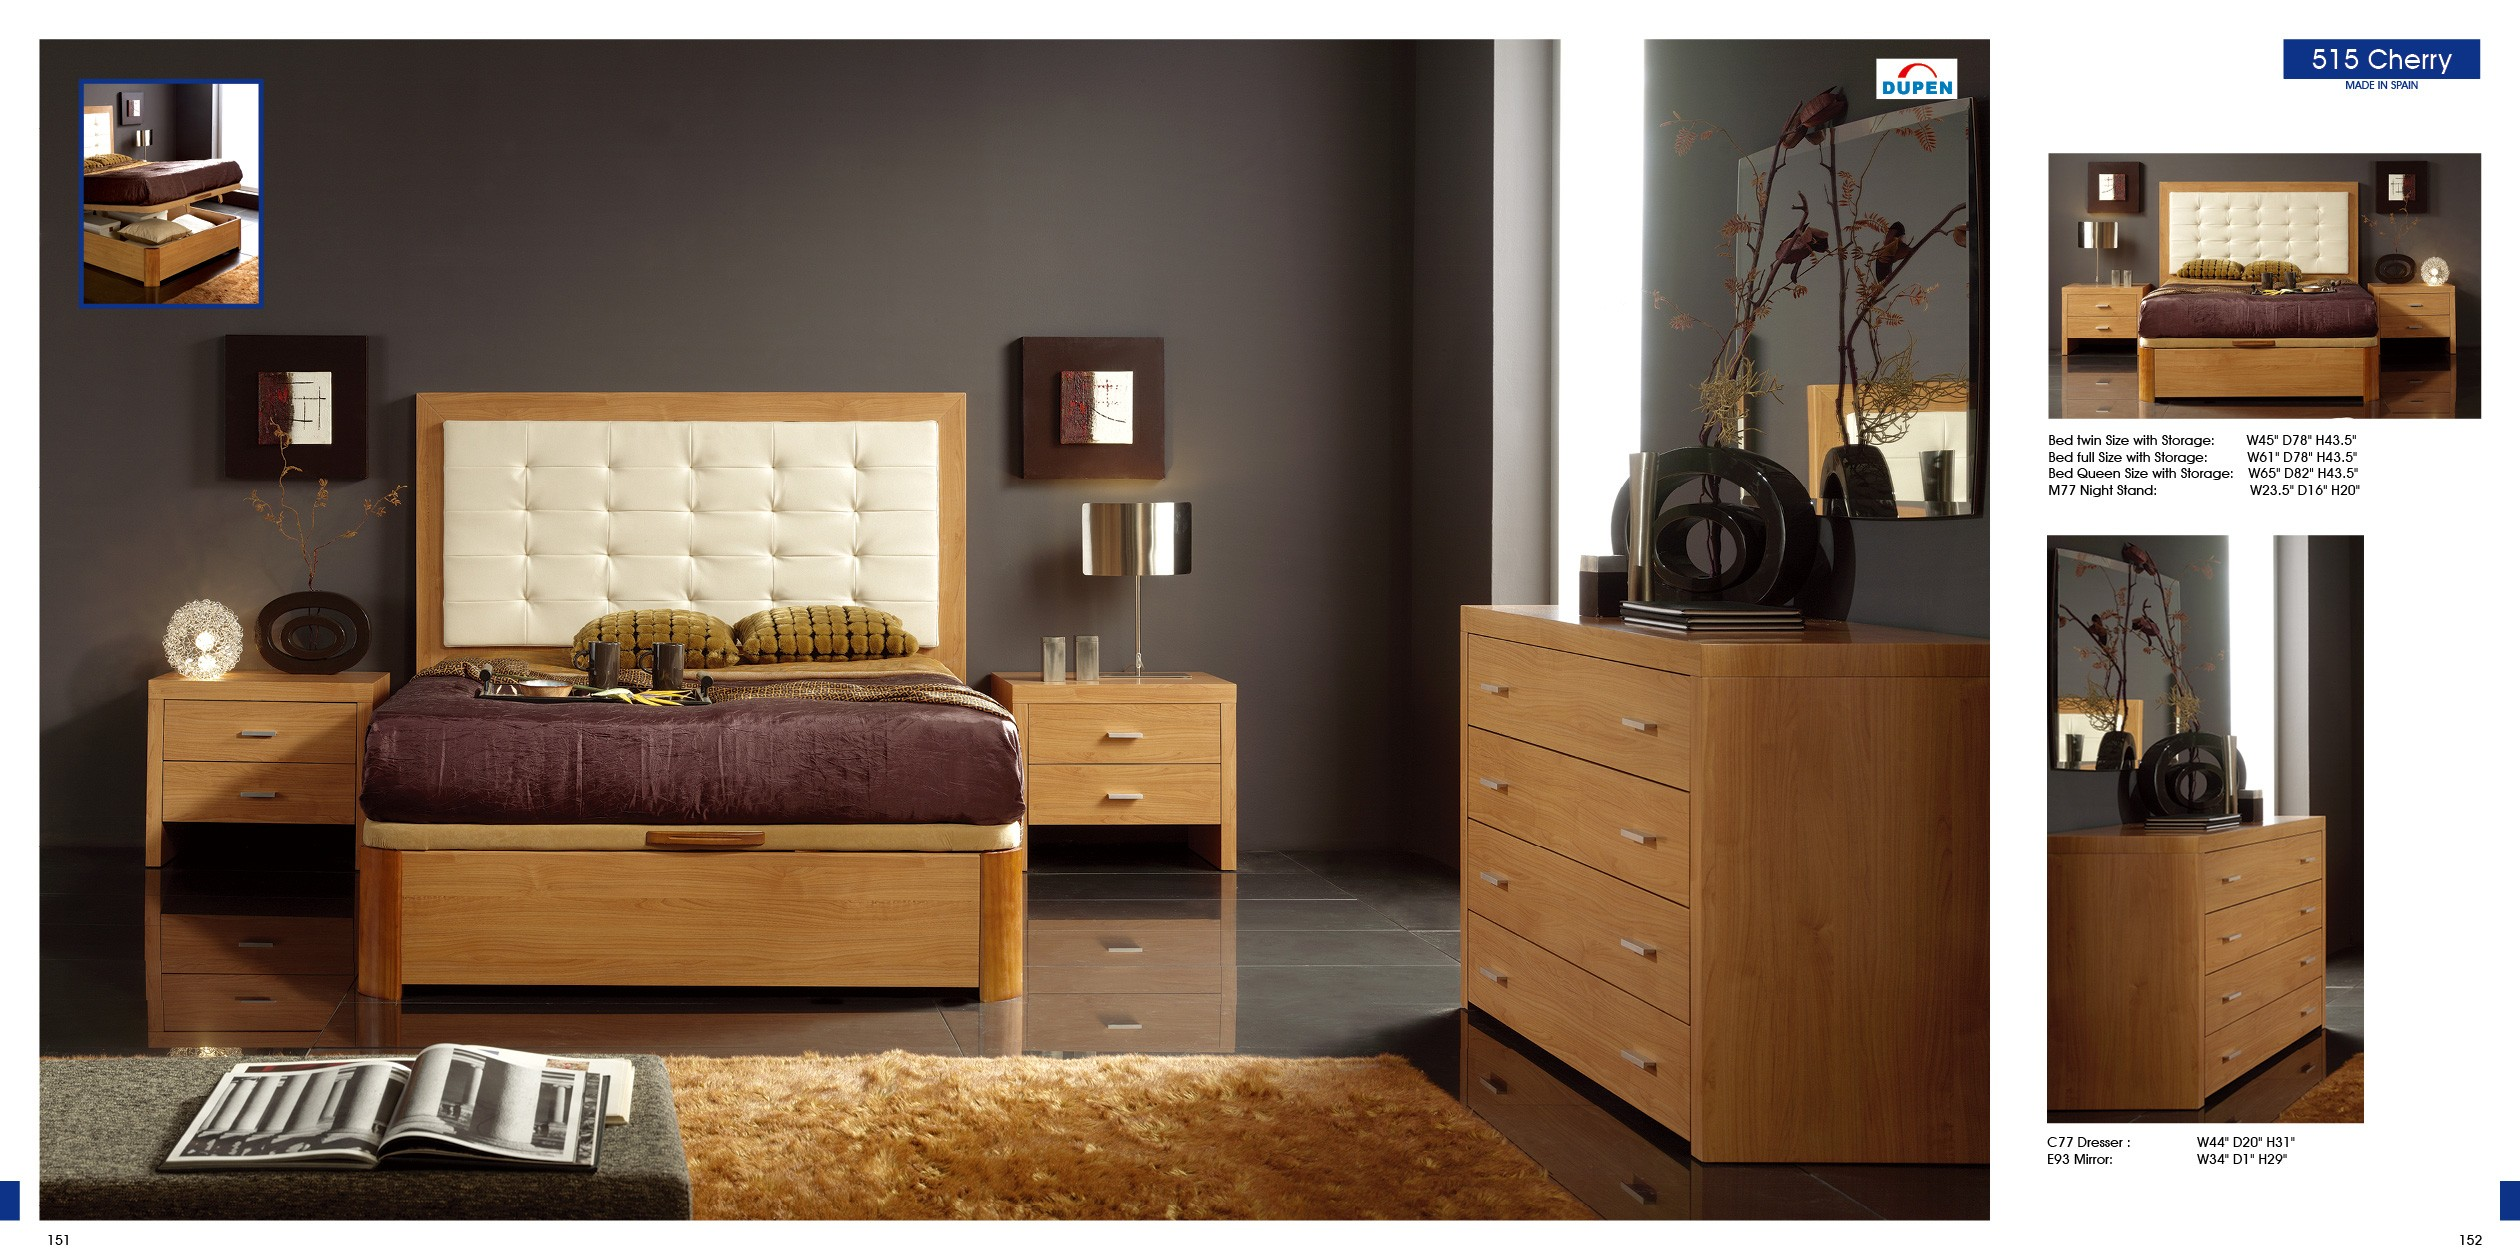 esf twin size beds alicante 515 cherry m77 c77 esf twin size beds bedroom shop by room